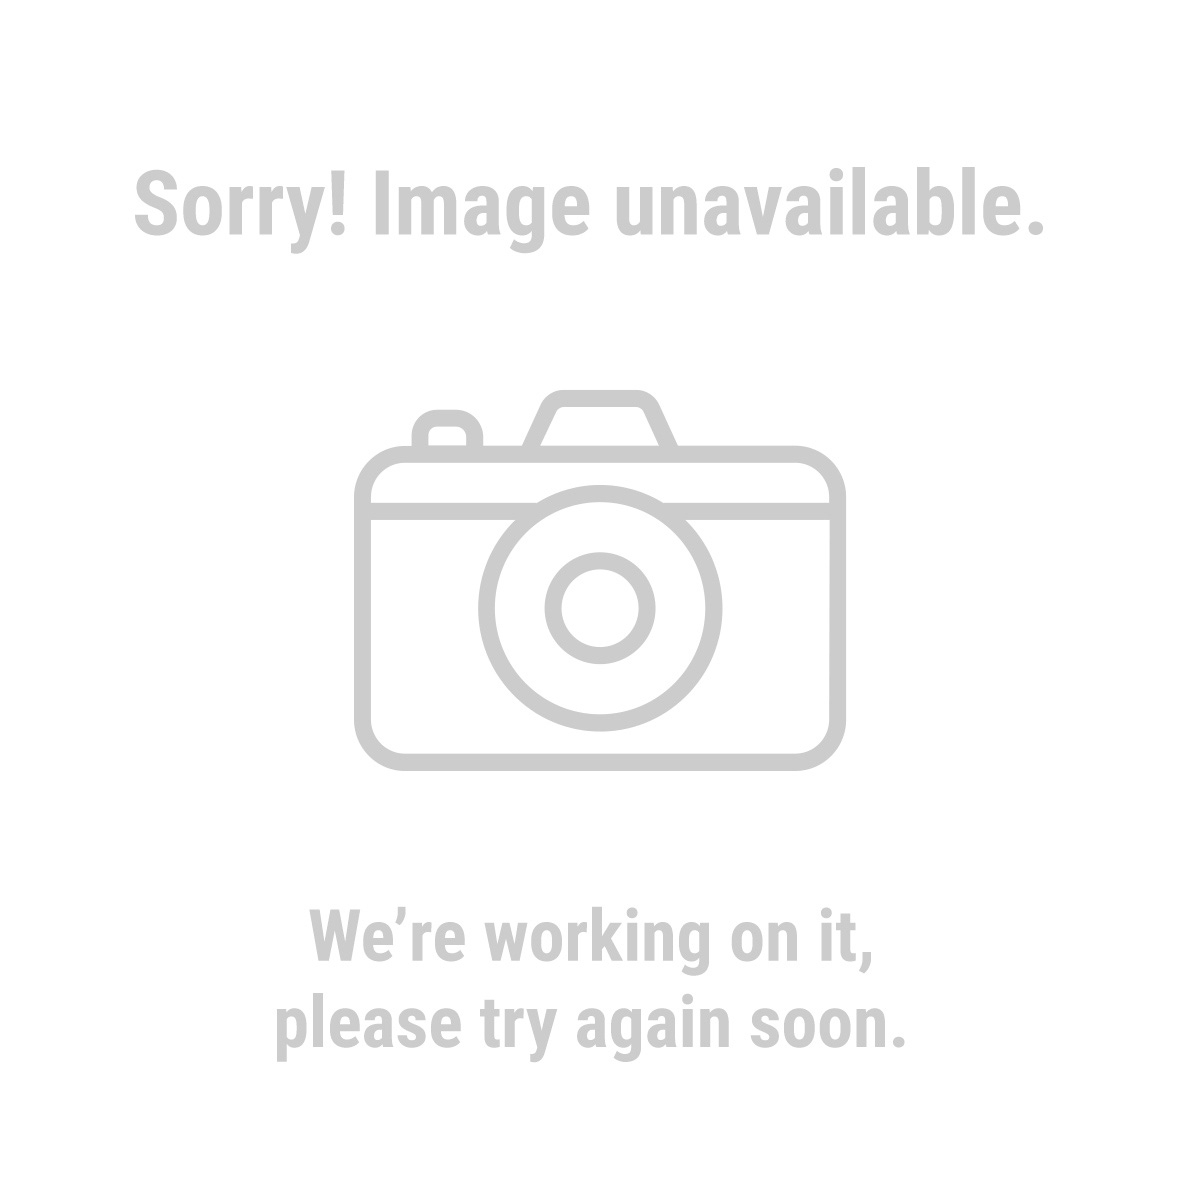 Harbor freight badland 2500 winch coupon / Allegra coupon $10